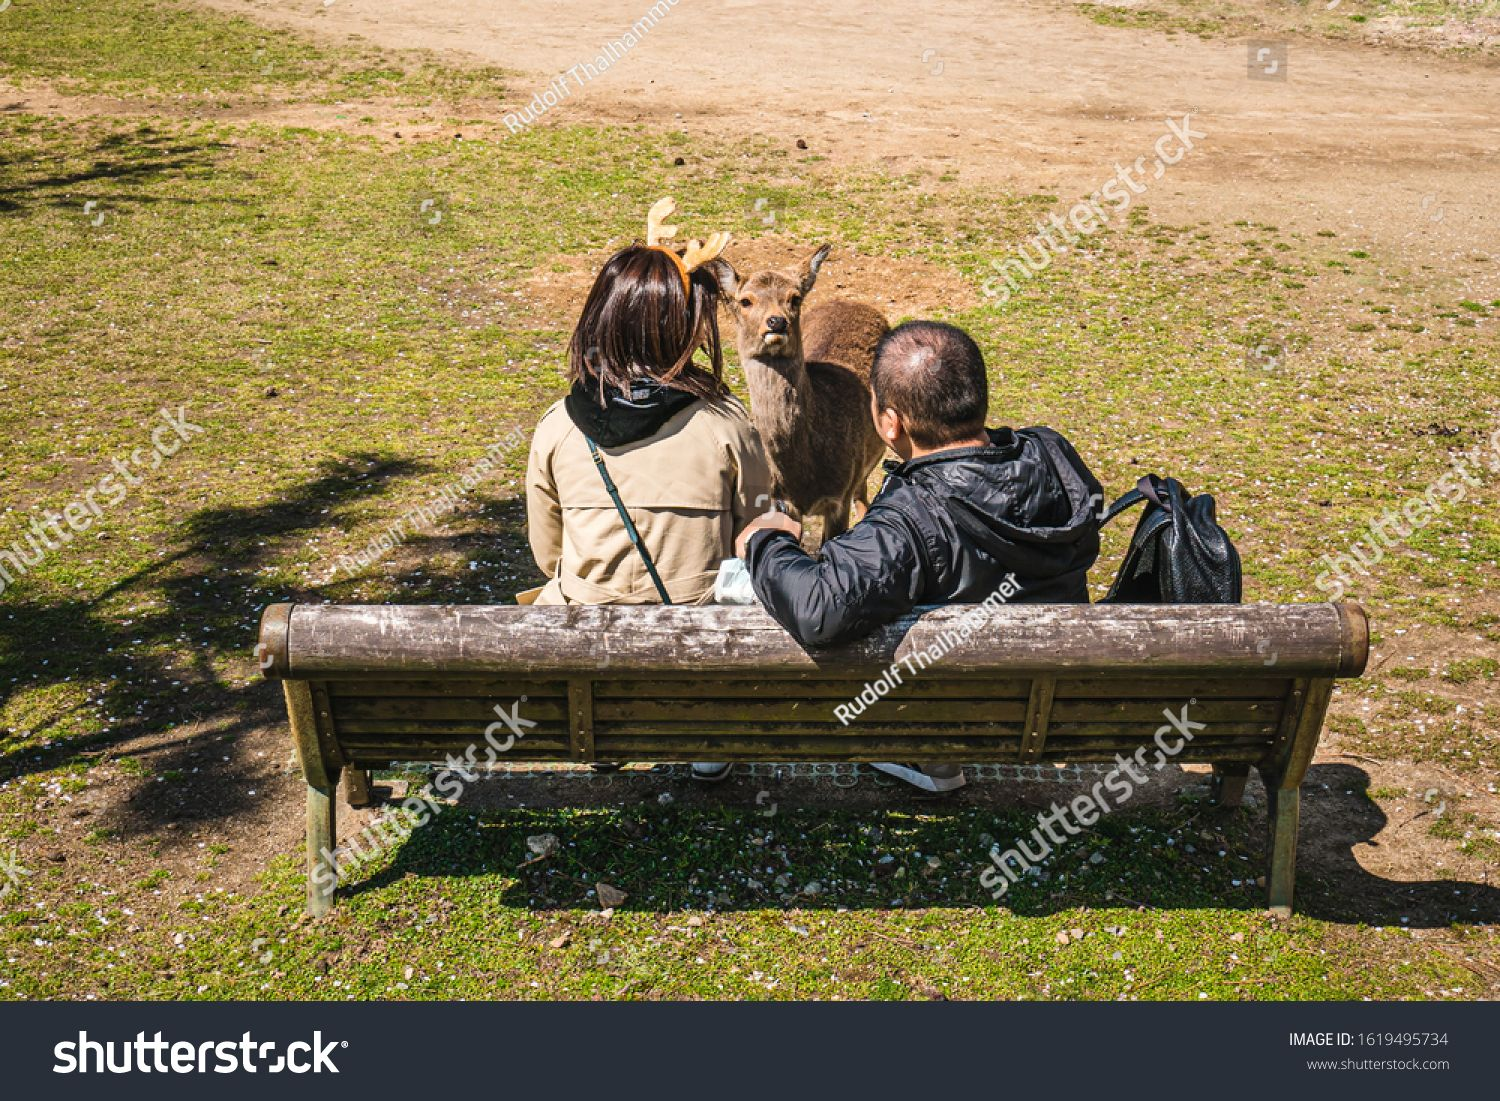 Two Tourist Sitting On A Park Bench Watching At A Deer In The Park Of Nara One Of Them Wearing A Headband In Form Of Dear A In 2020 Park Bench